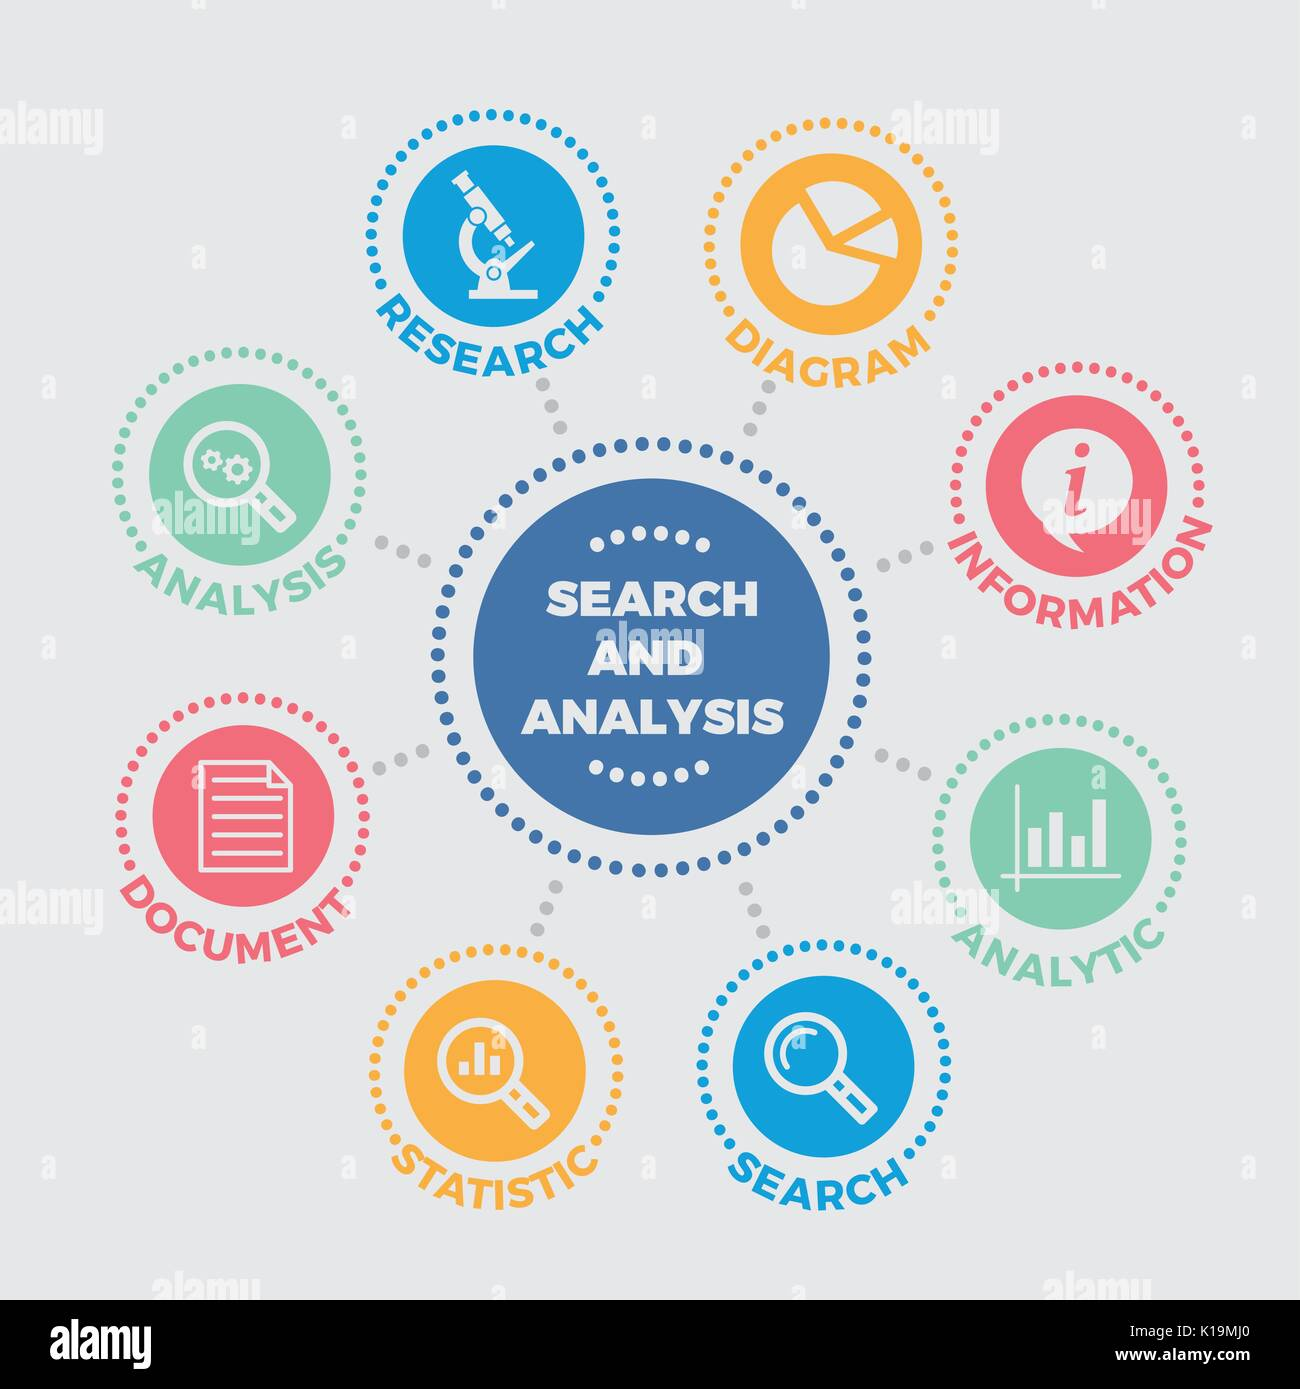 Search and analysis Illustration with icons - Stock Vector